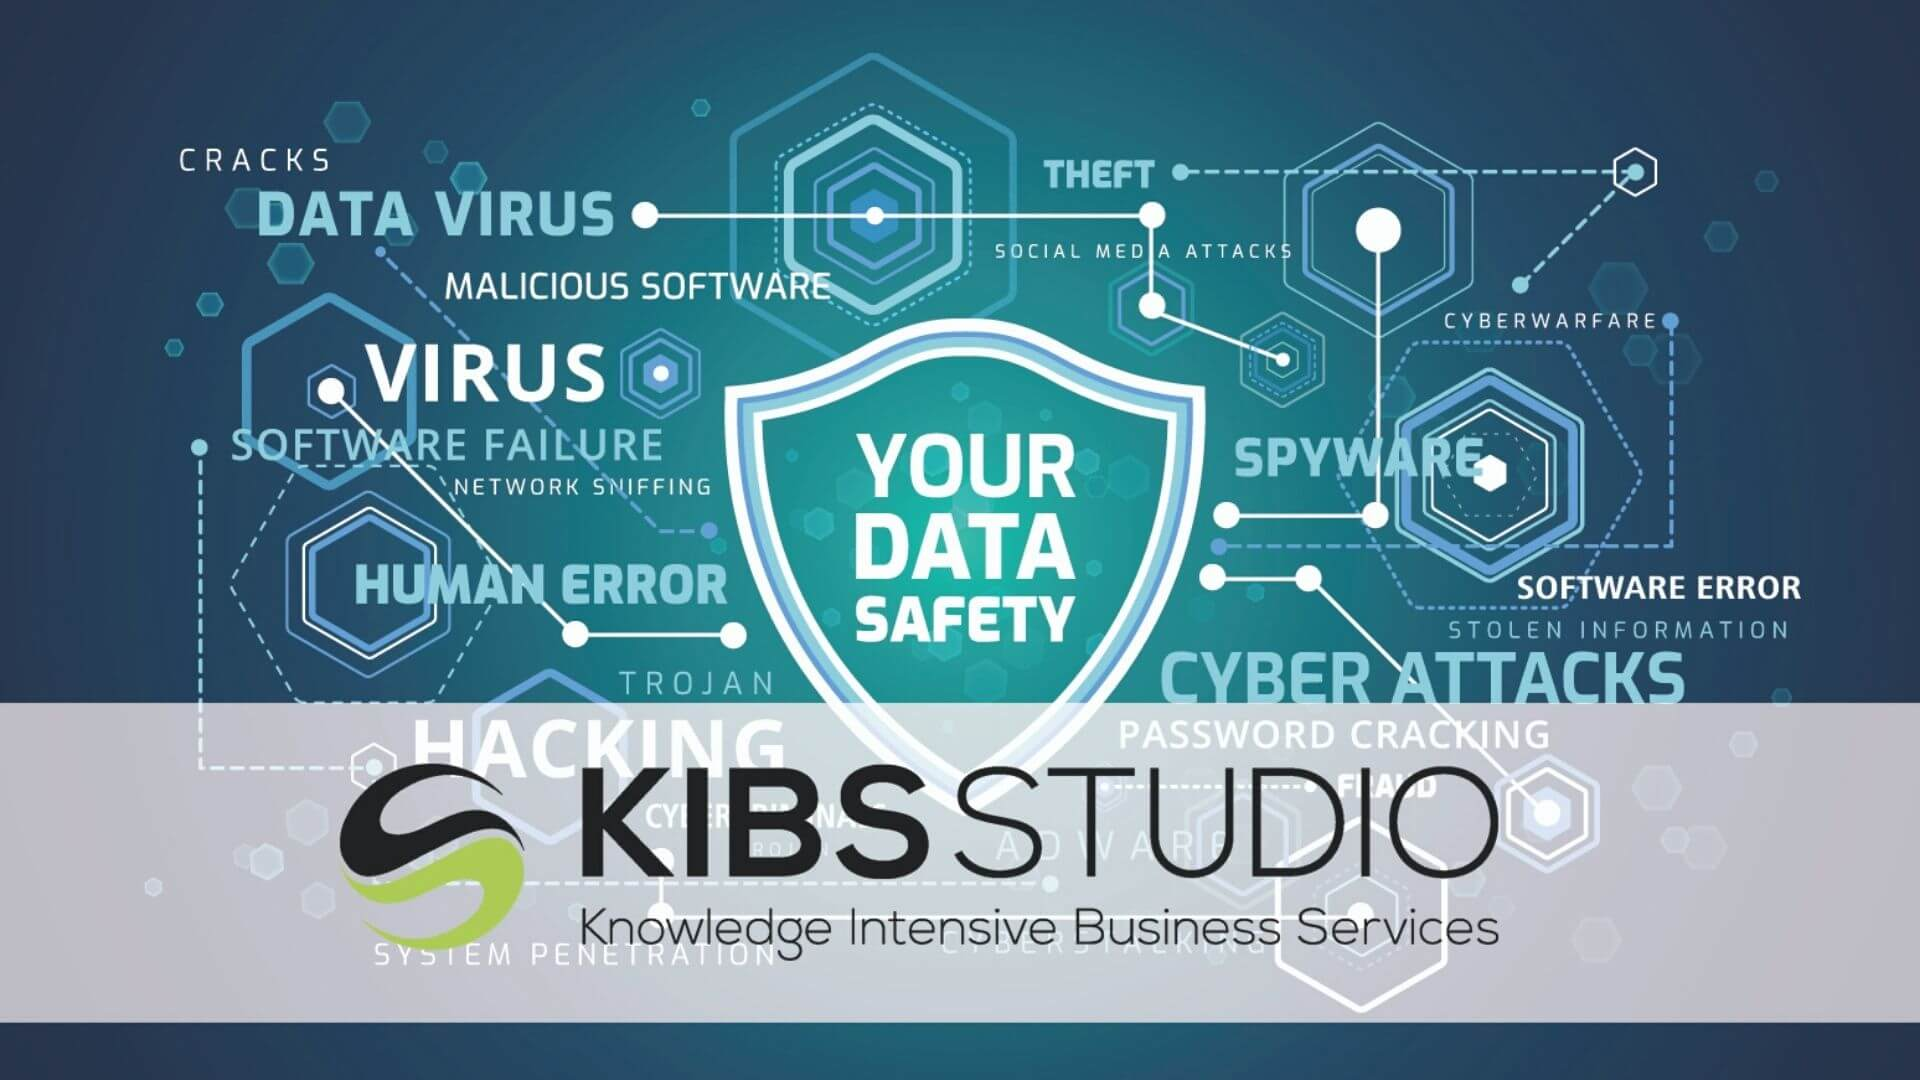 Cyber security awareness KIBS Studio